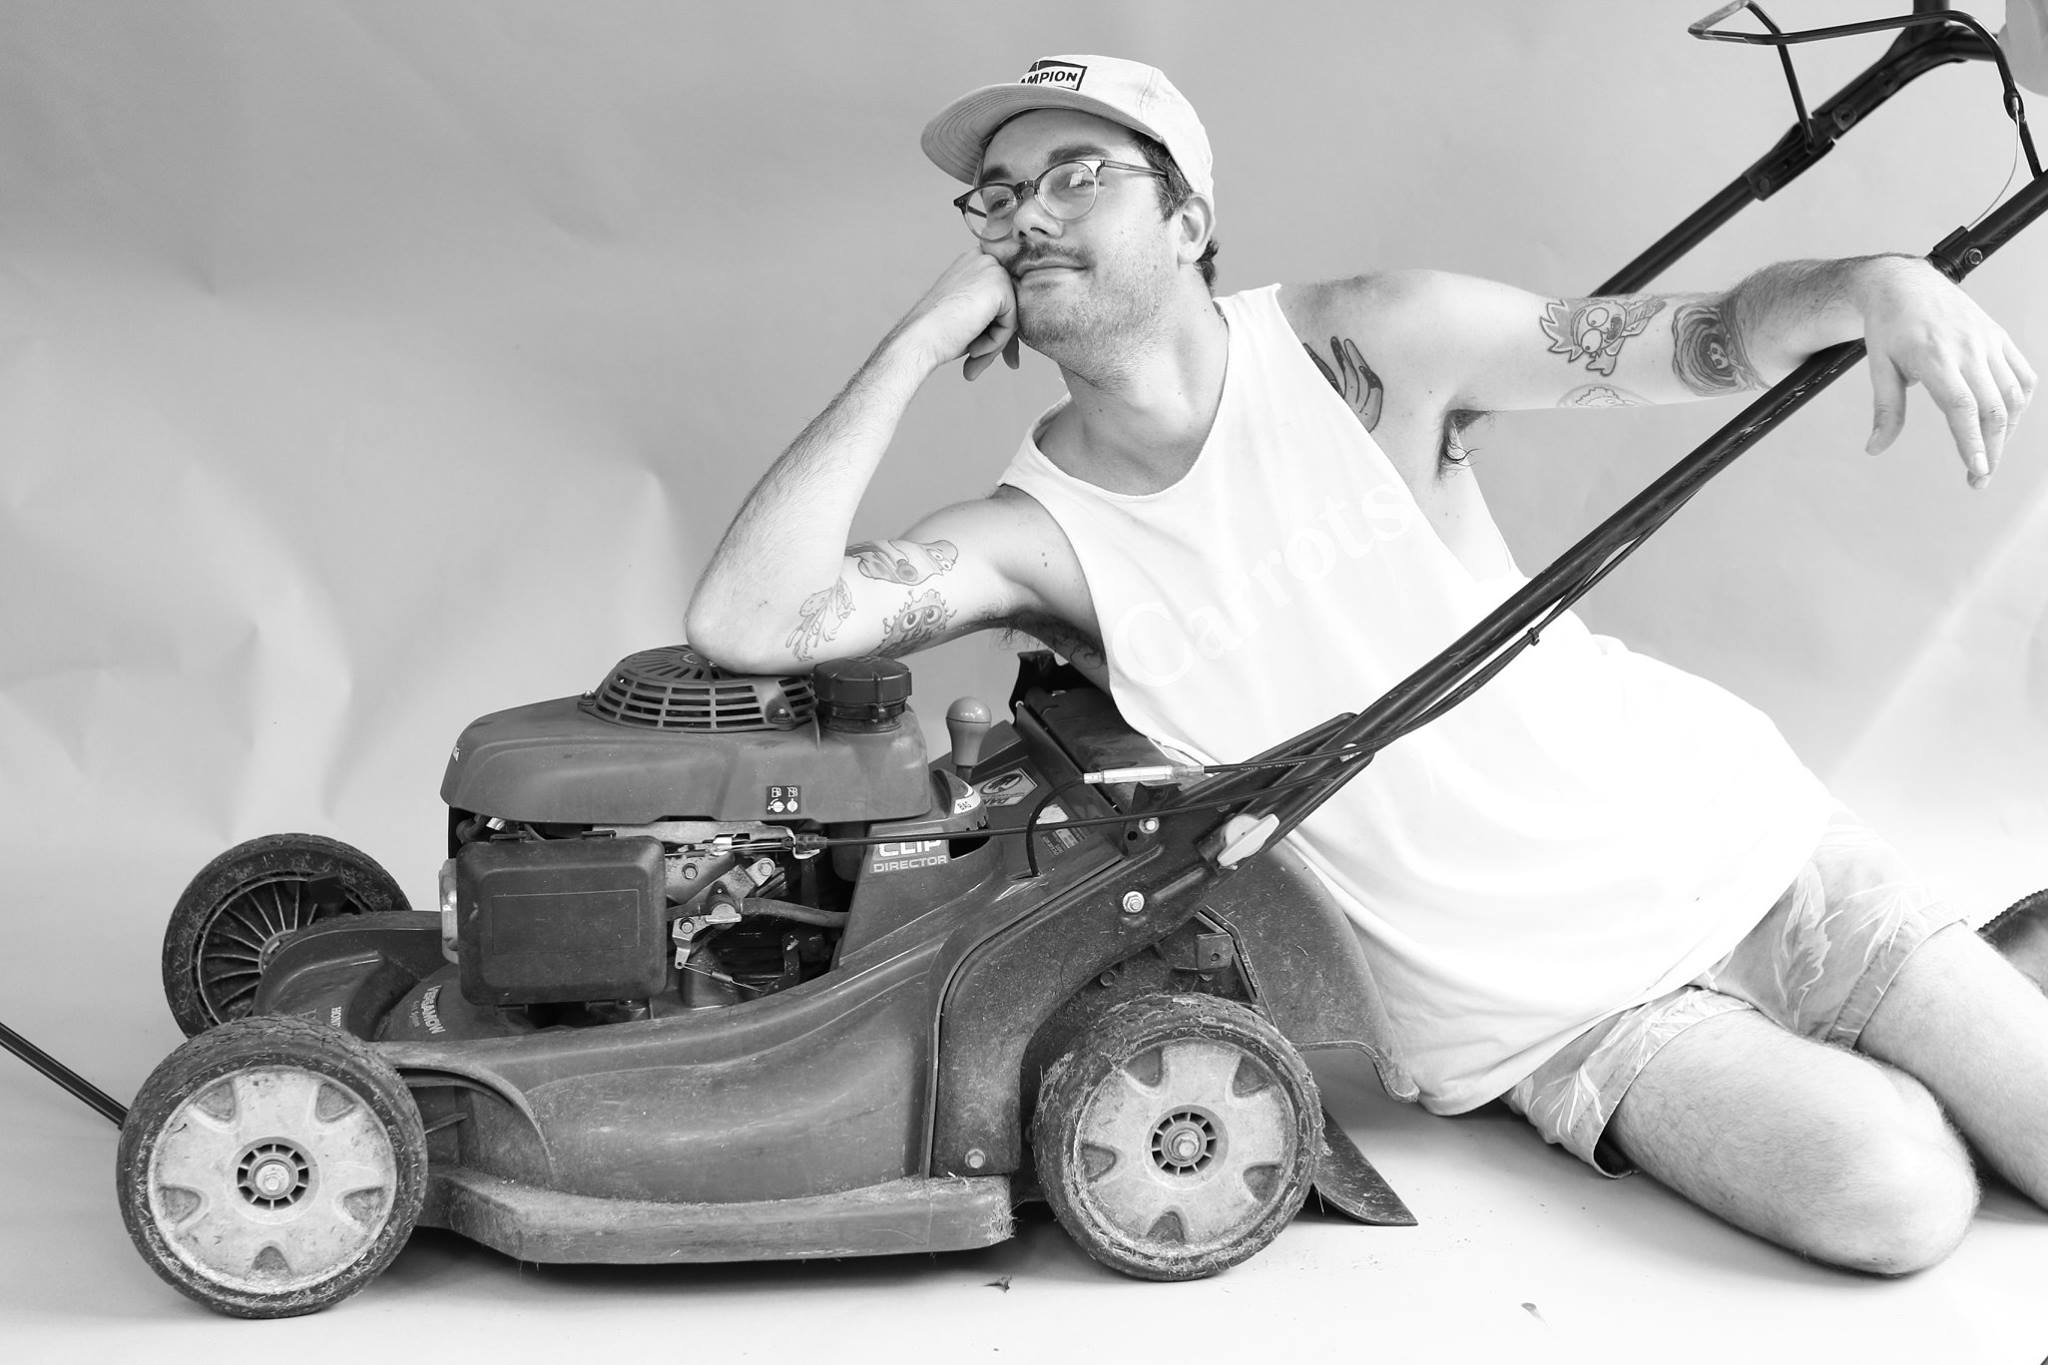 Grant Posing With A Lawnmower Black and White Photo